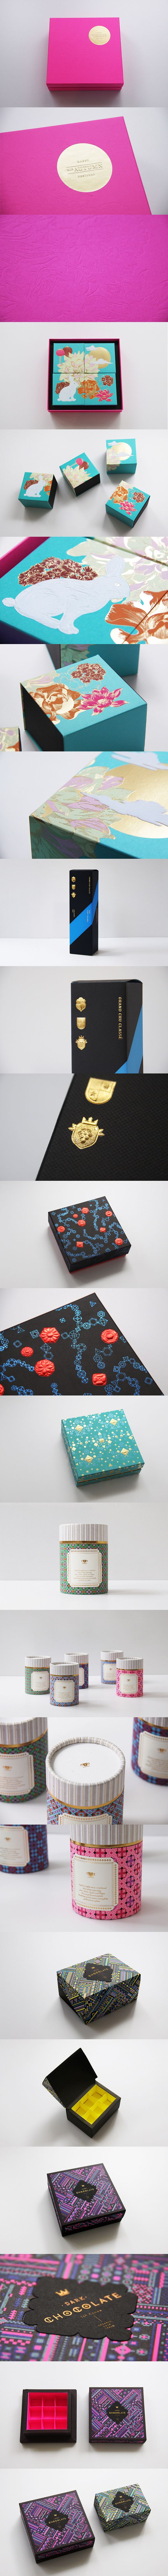 Astrobrights Packaging by  Ken Lo. Look at the embellishments on this #packaging PD